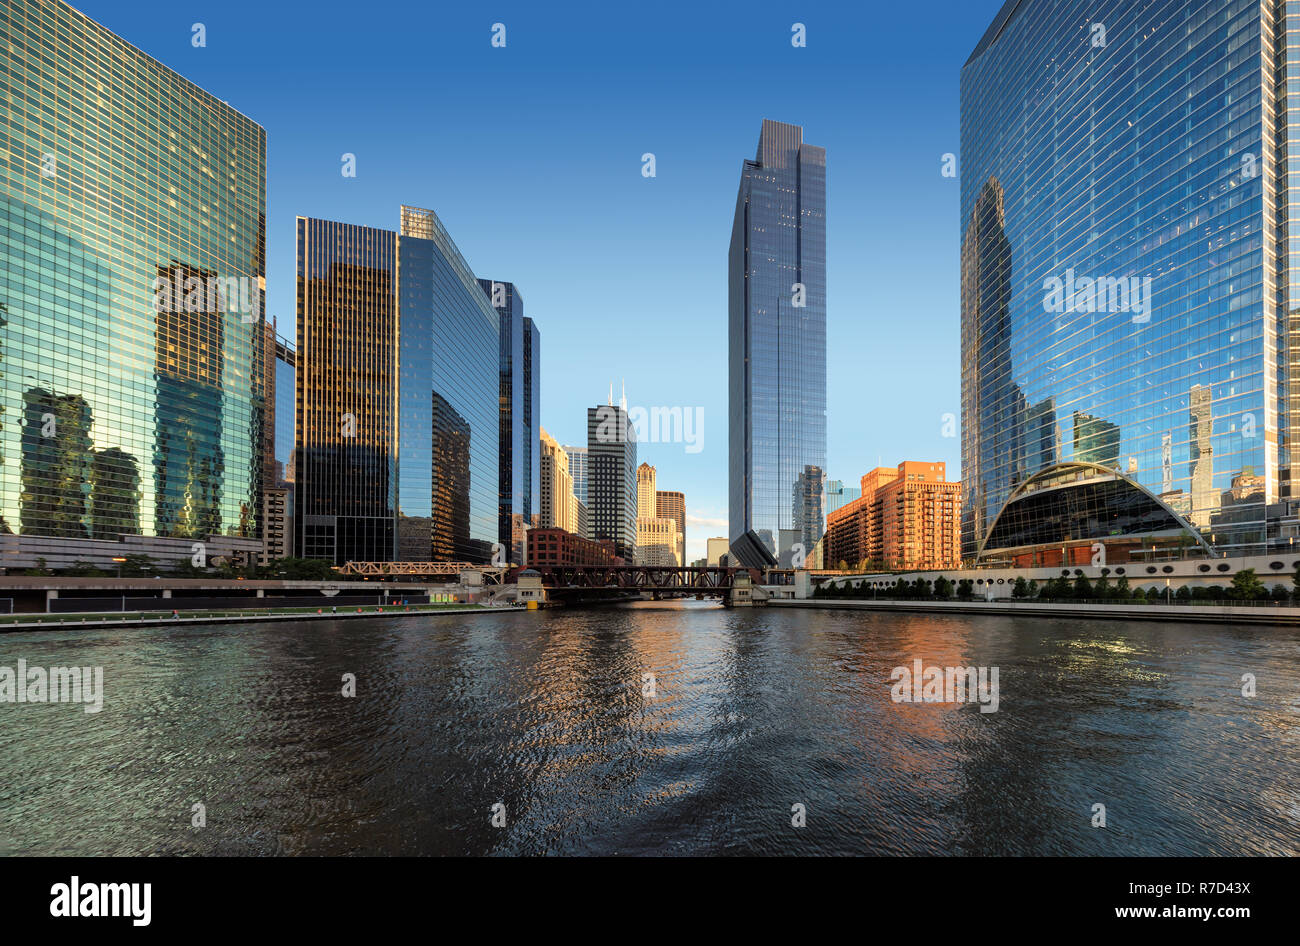 Panorama of Chicago downtown and Chicago River at sunset. Chicago, Illinois. - Stock Image